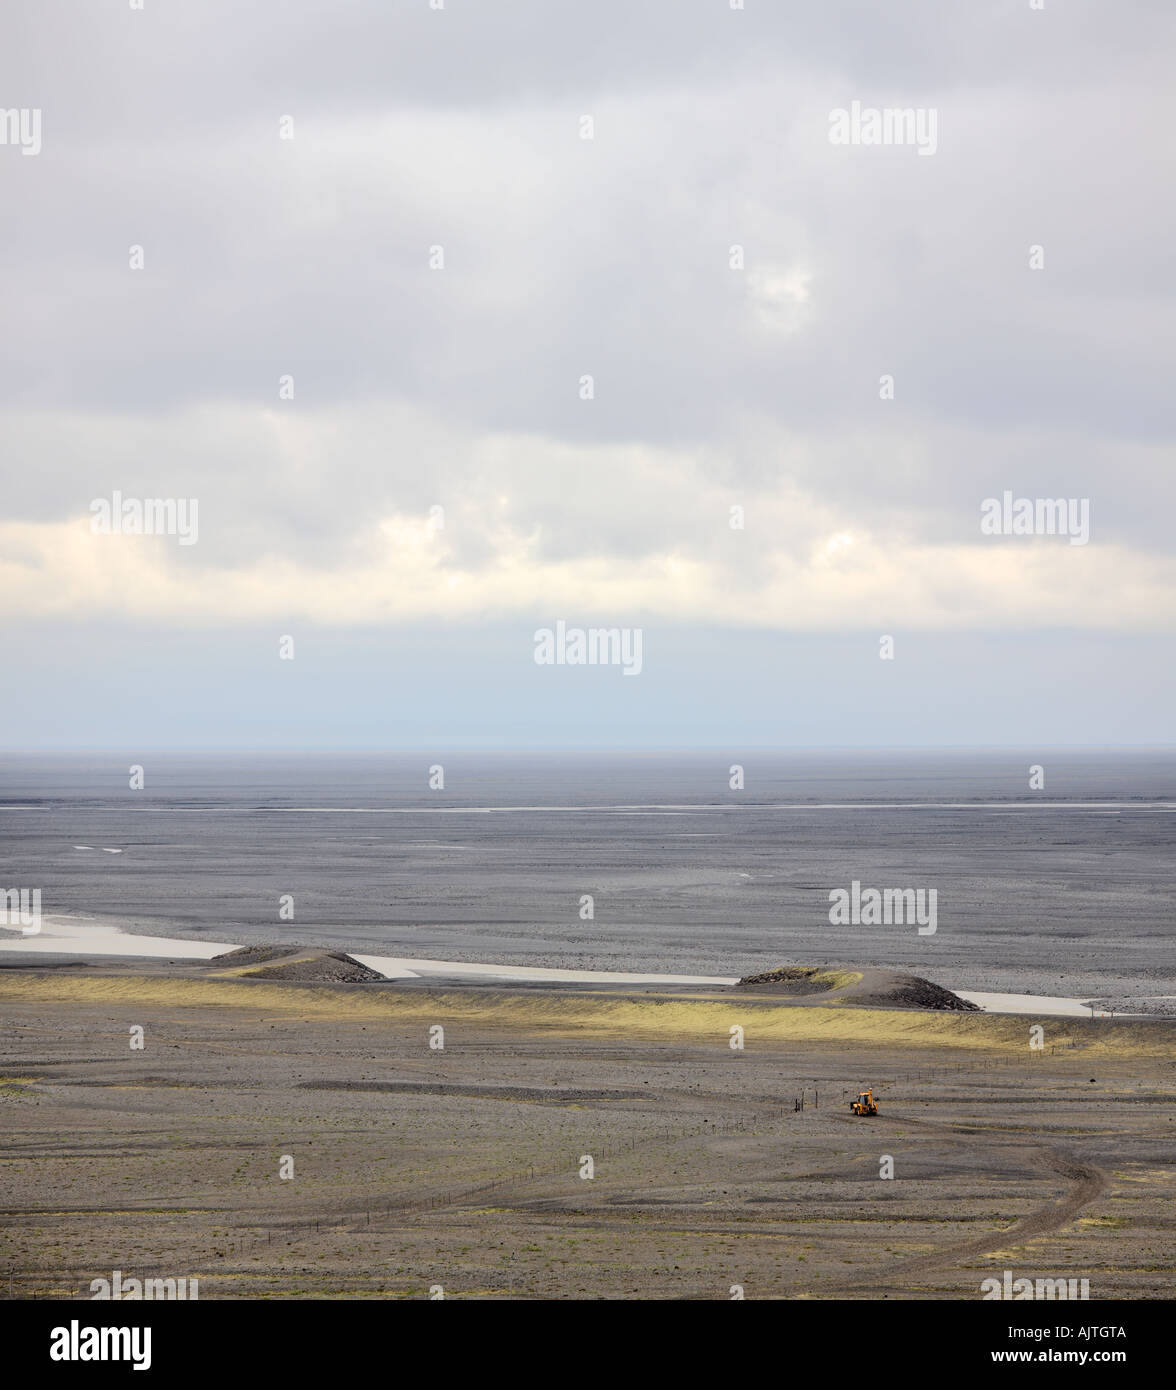 Flood plains and a yellow backhoe in Vatnajökull National Park, Iceland Stock Photo